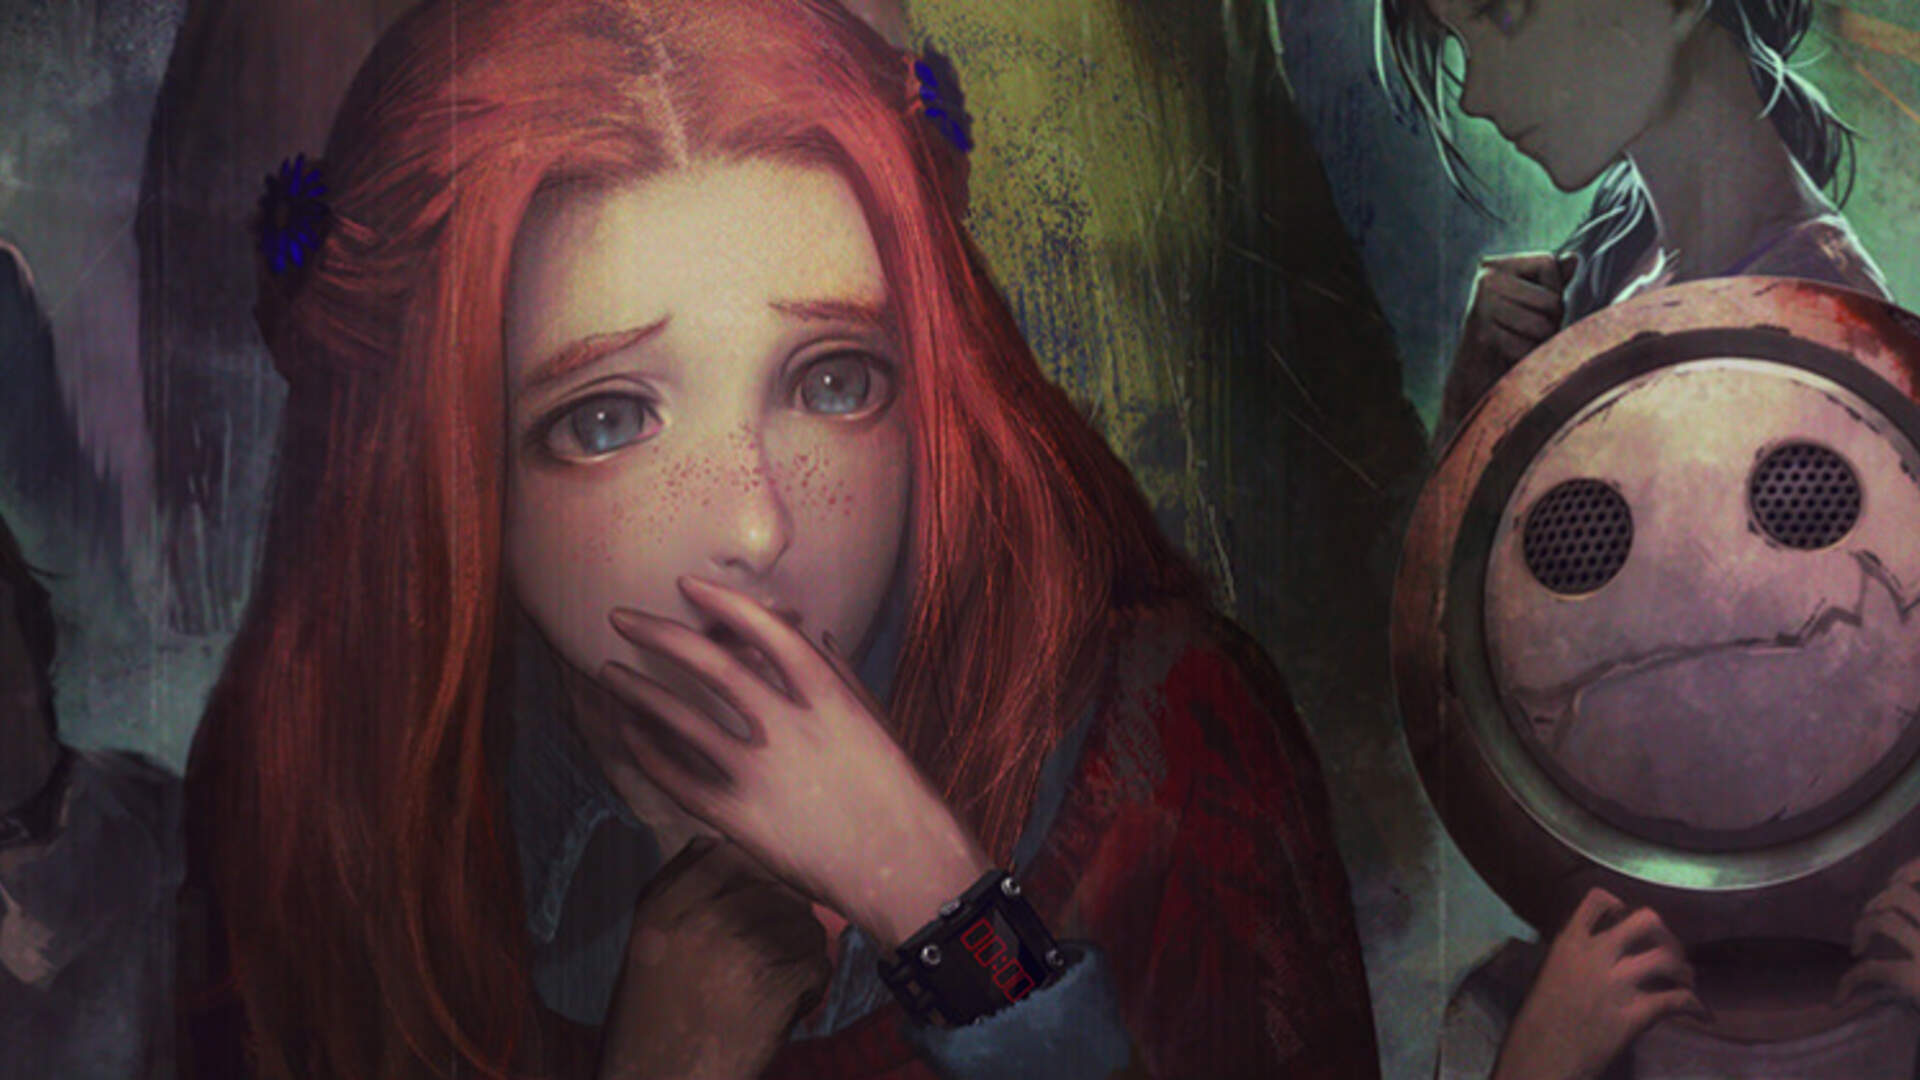 Zero Time Dilemma Coming To PS4, According to Amazon